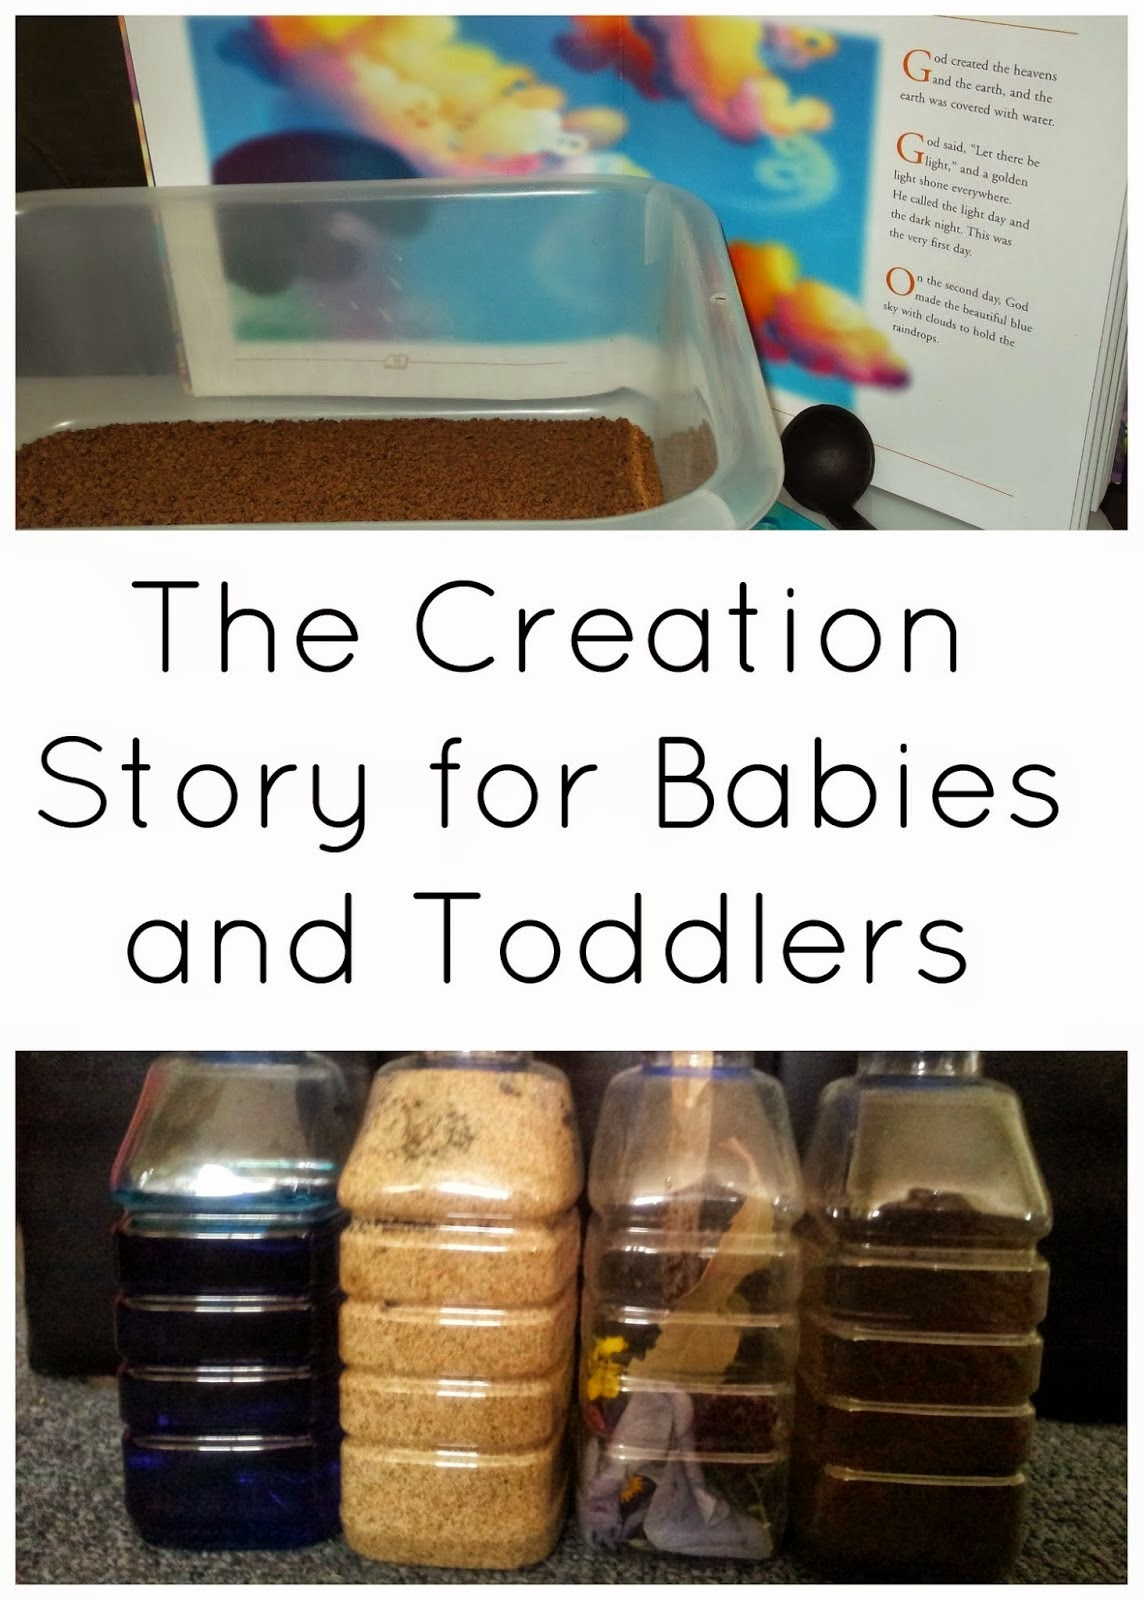 http://squigglesandbubbles.blogspot.com.au/2014/02/three-sensory-tubs-to-explore-christian.html